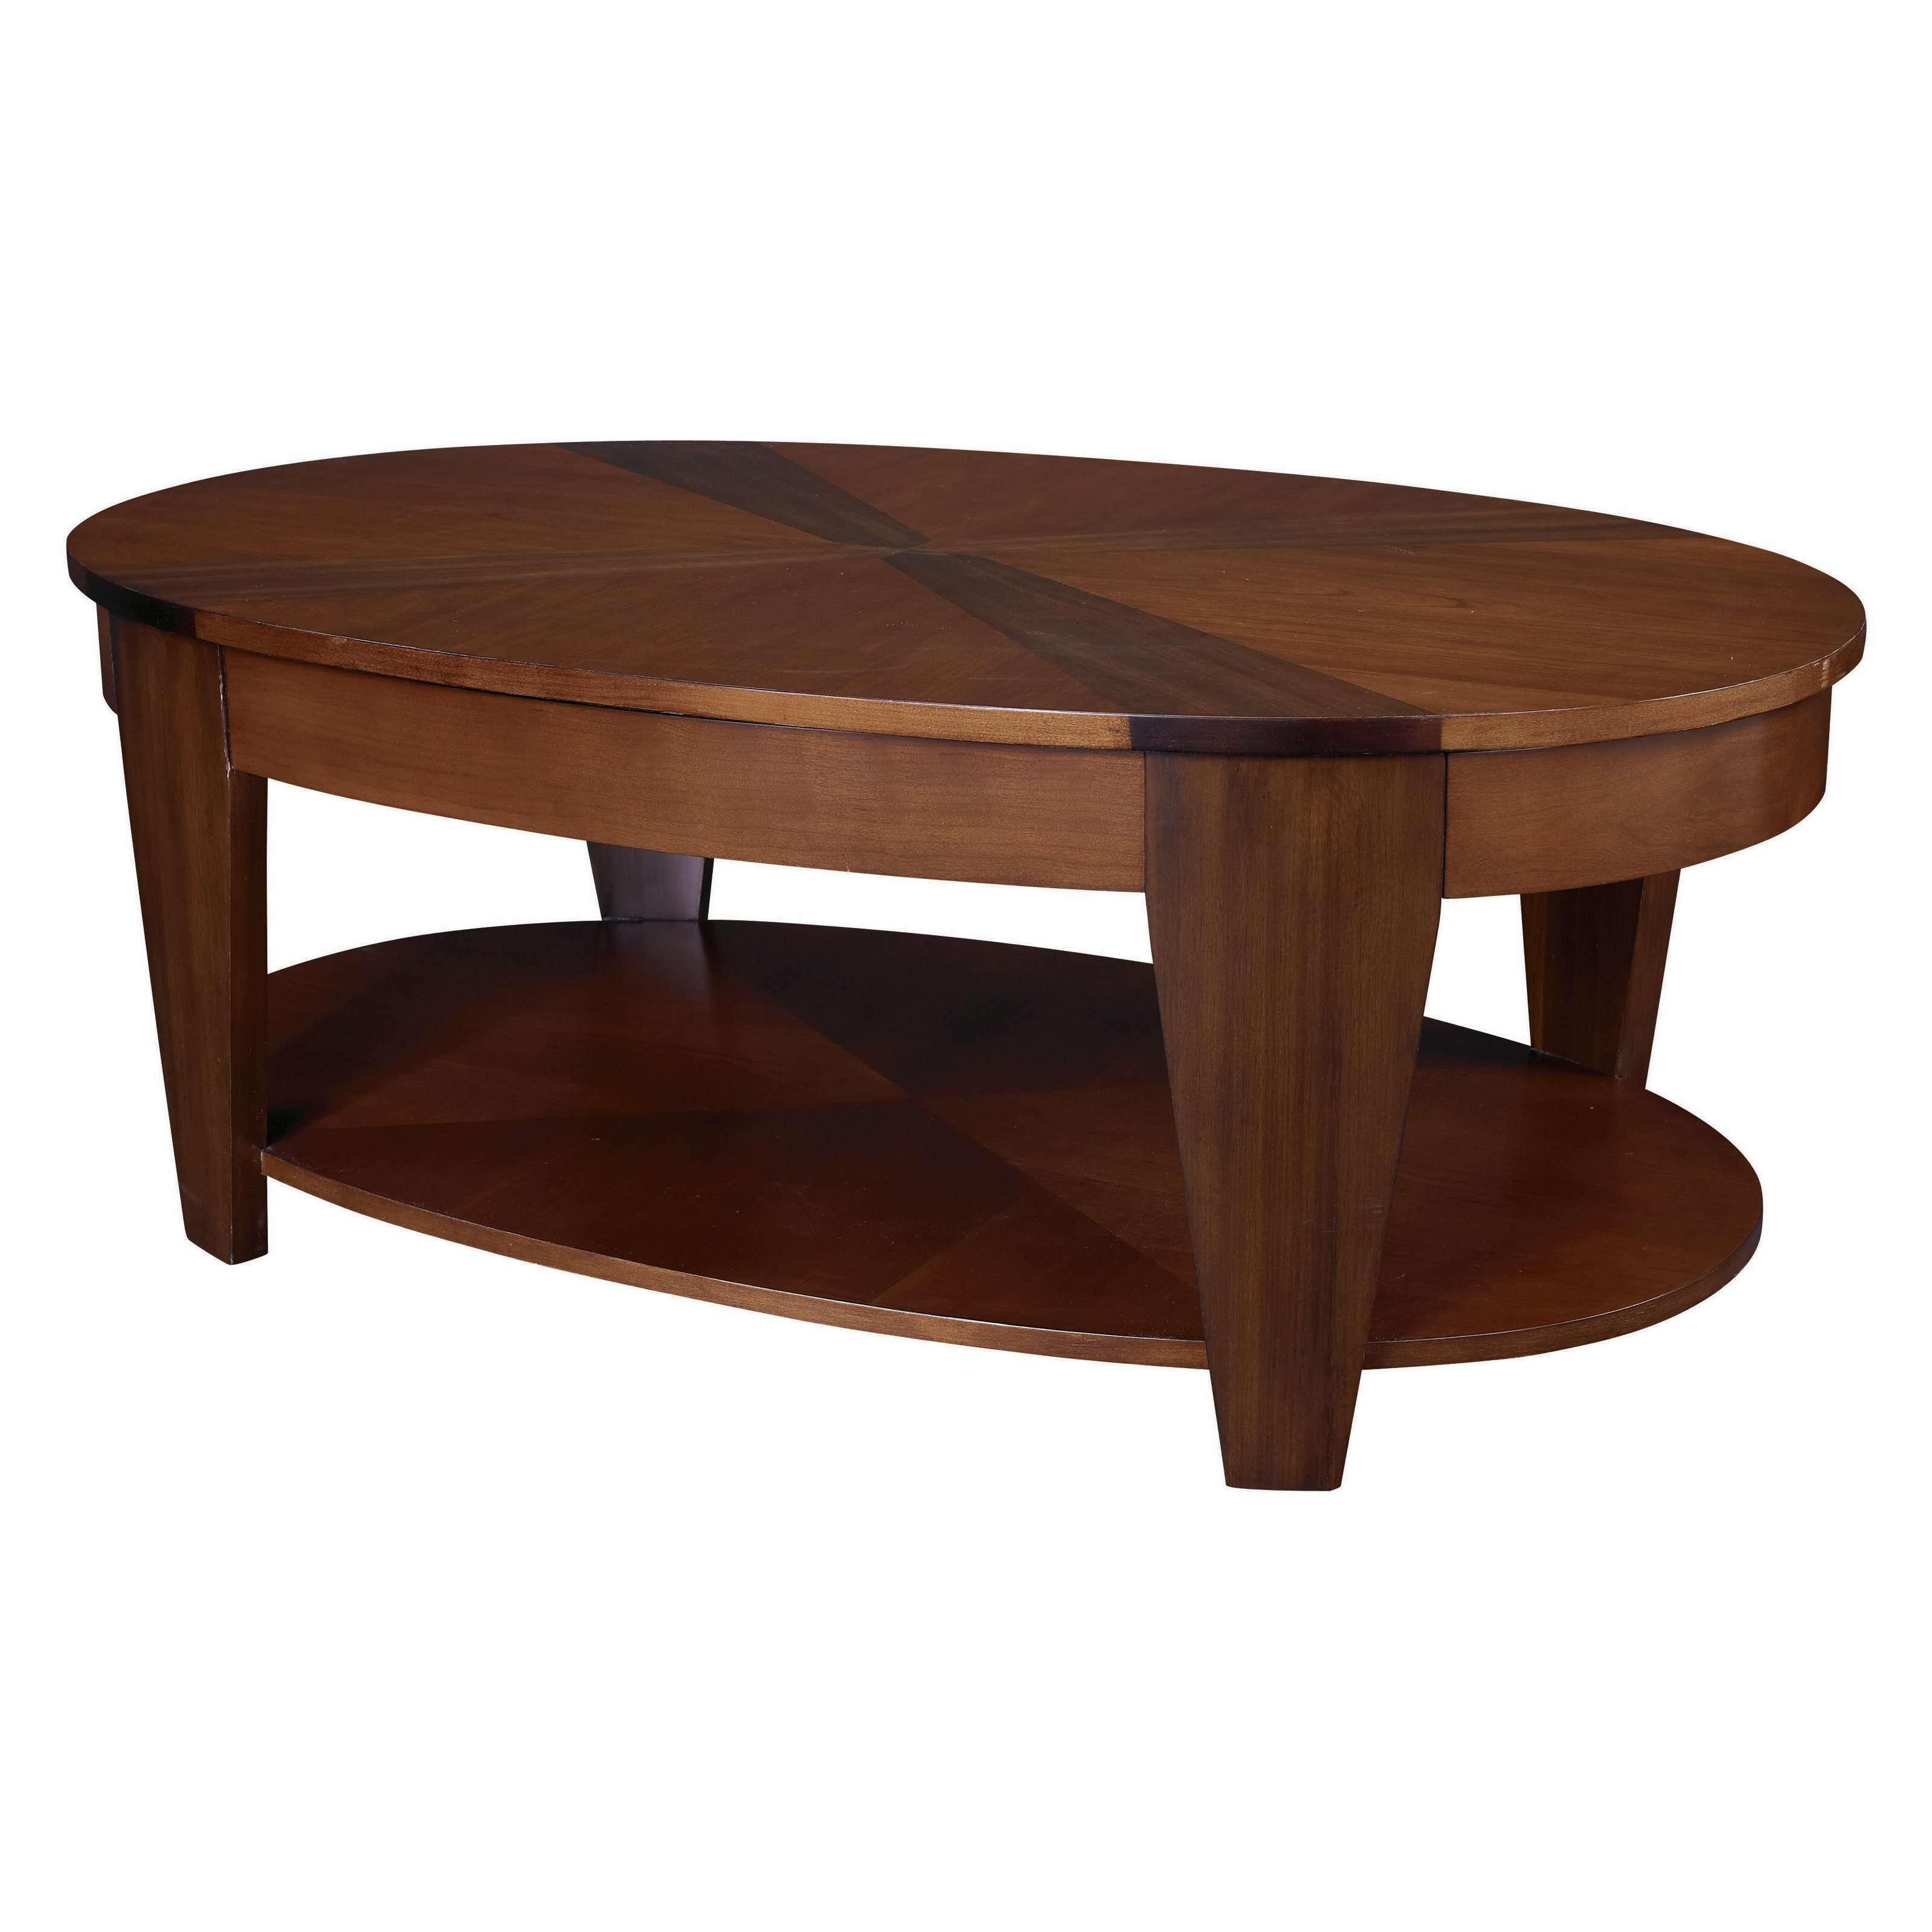 Coffee Table : Oval Coffee Table End Tables With Storage' Coffee Pertaining To Newest Oval Wood Coffee Tables (View 4 of 20)